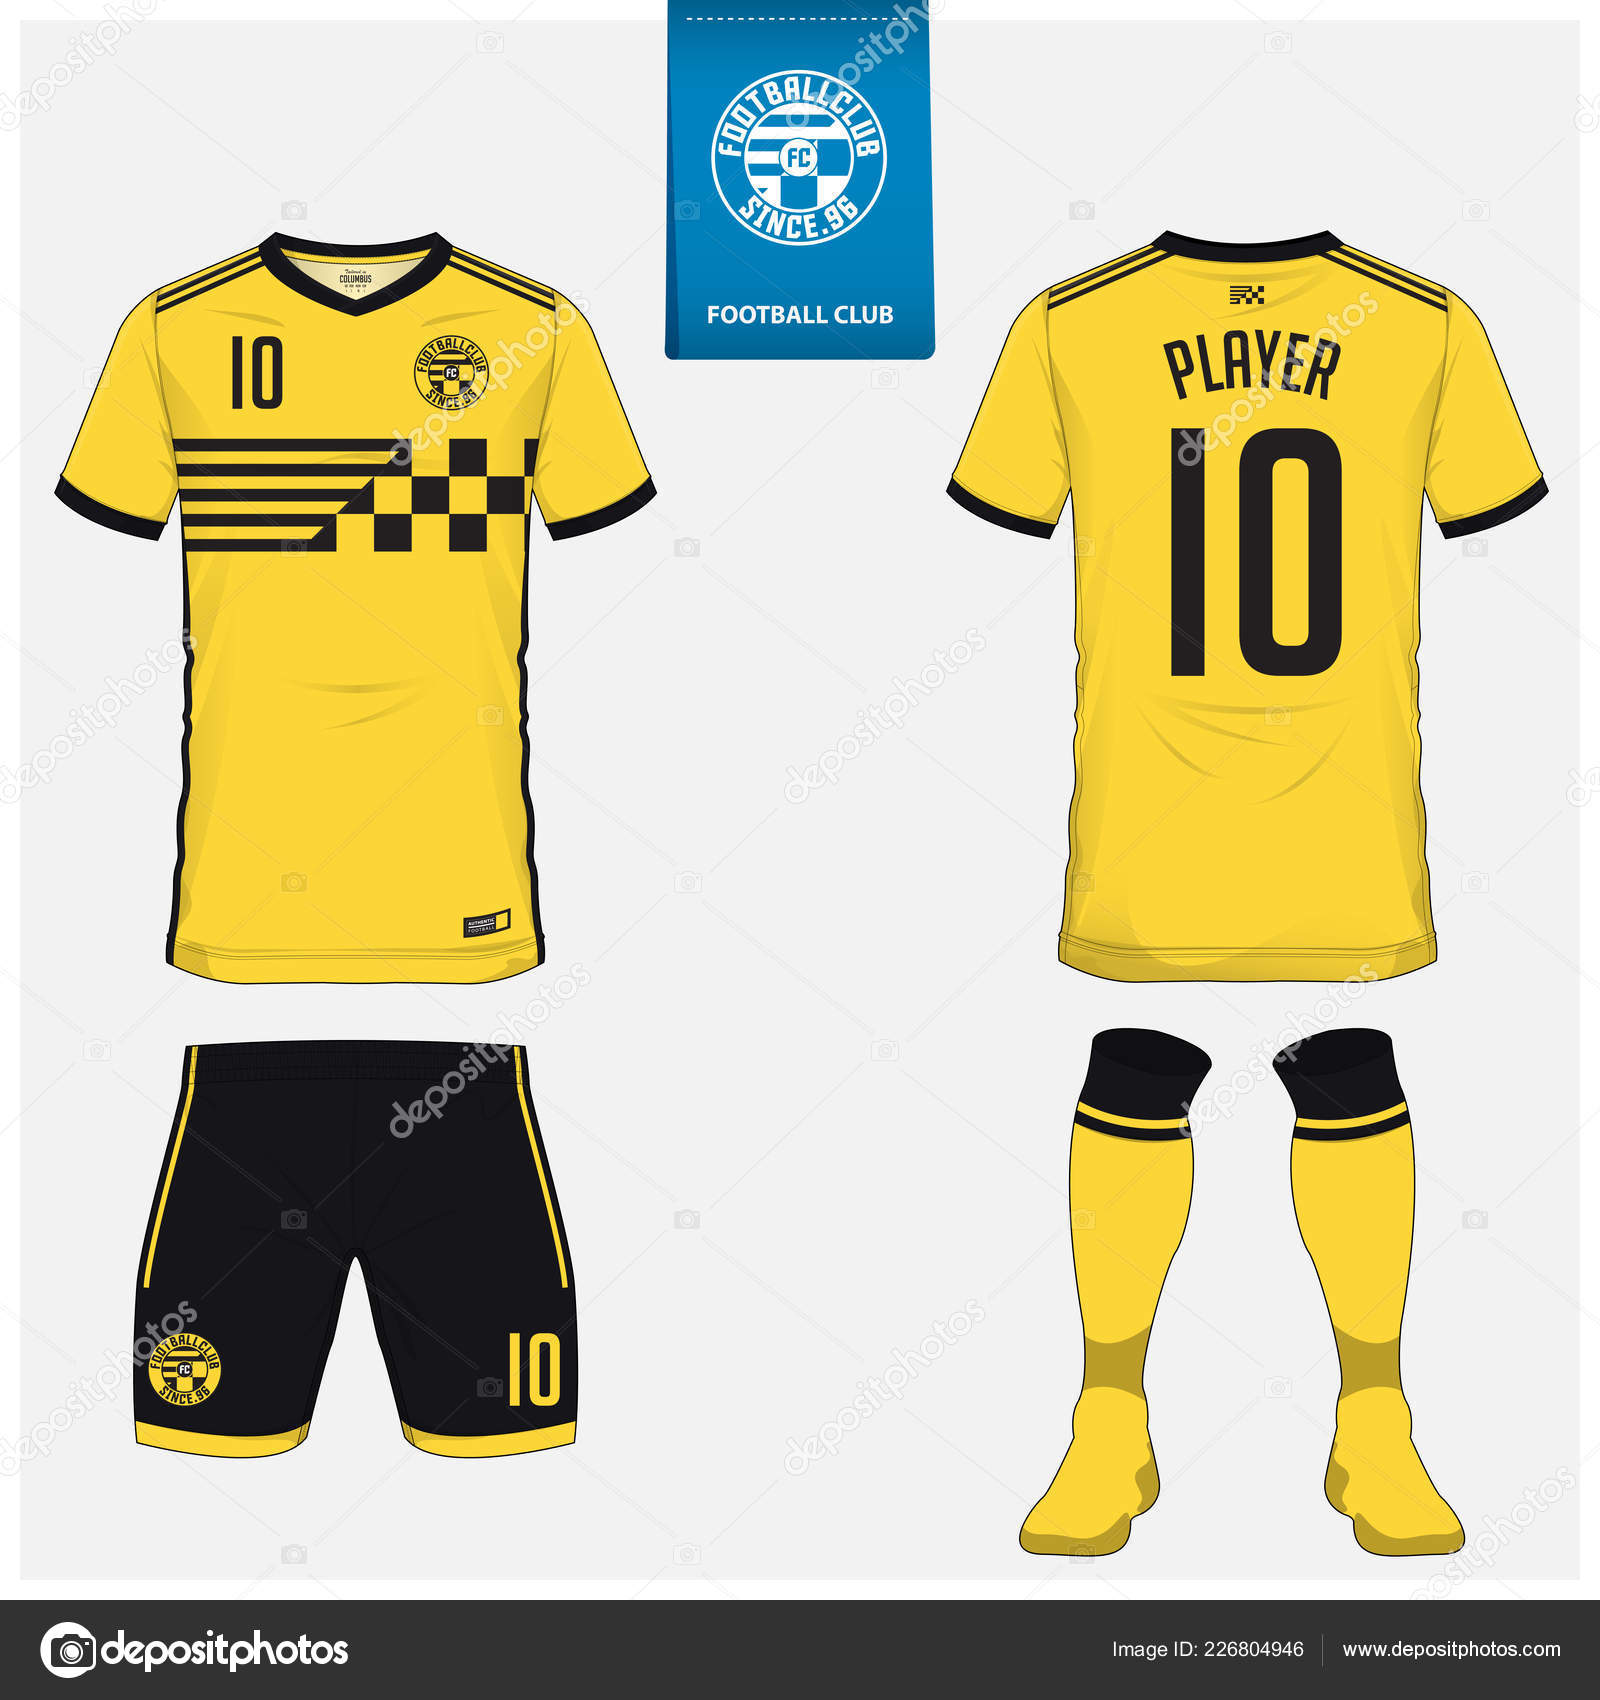 aa19bfbfb Soccer jersey or football kit, shorts, sock, template design for soccer club.  Sport t-shirt mock up. Front and back view soccer uniform.